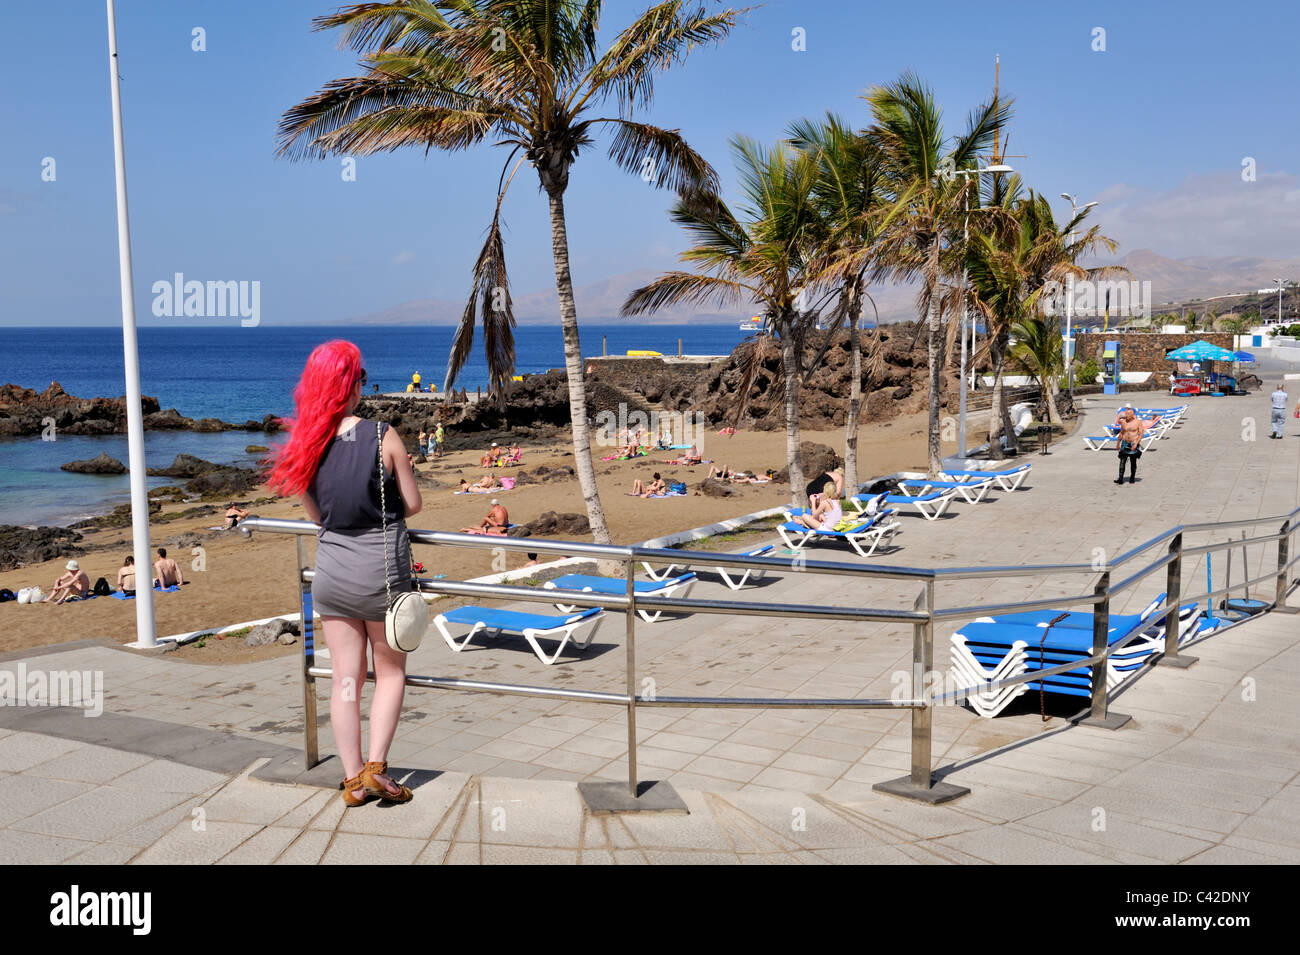 Beach And Promenade Of Playa Chica Old Town Puerto Del Carmen Stock Photo Alamy